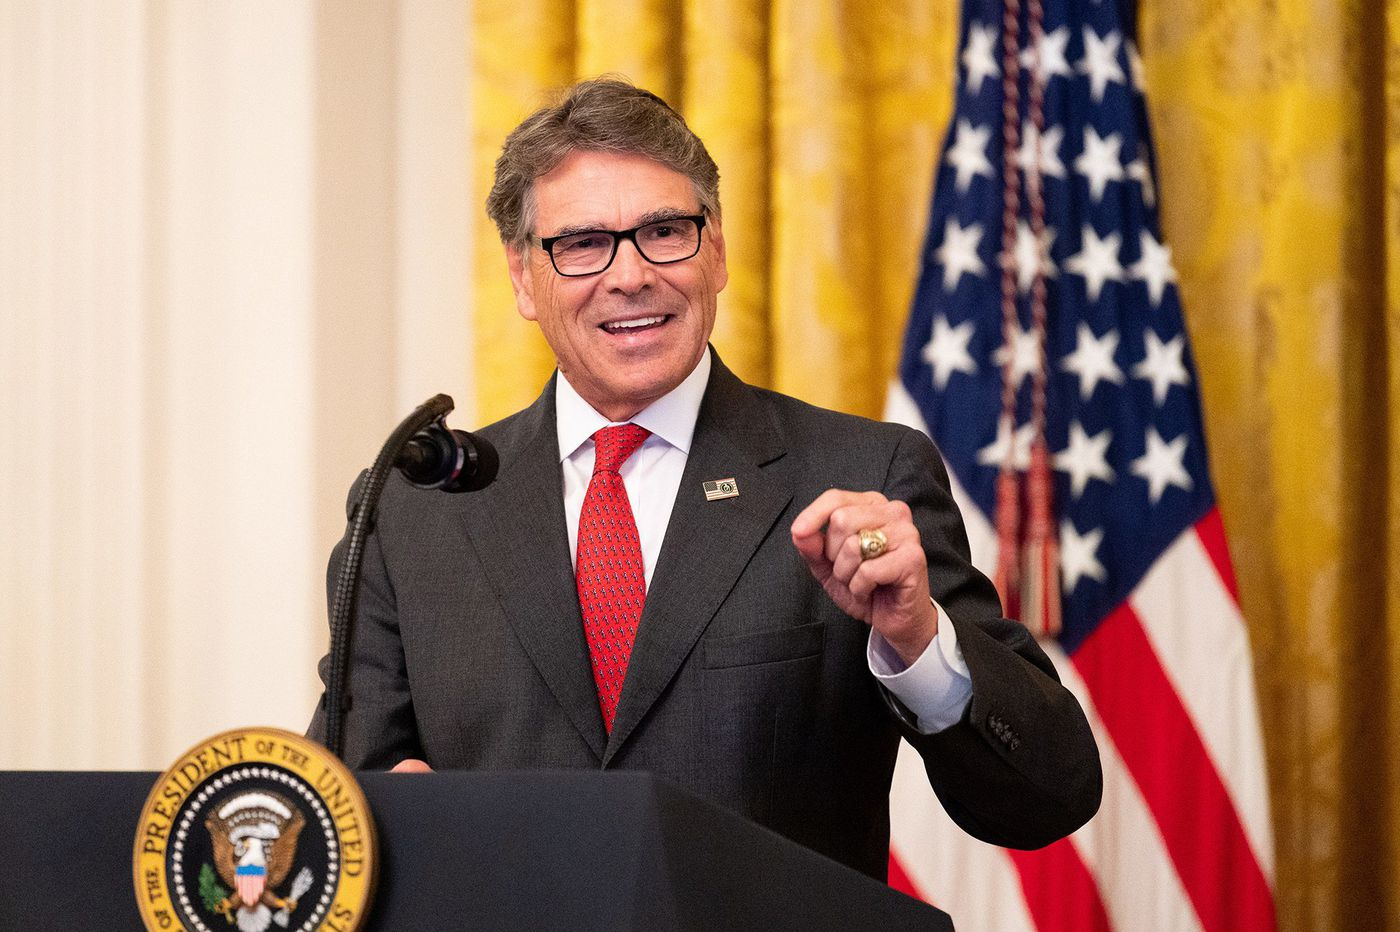 Energy Secretary Rick Perry meets with Ukrainian officials as impeachment probe intensifies